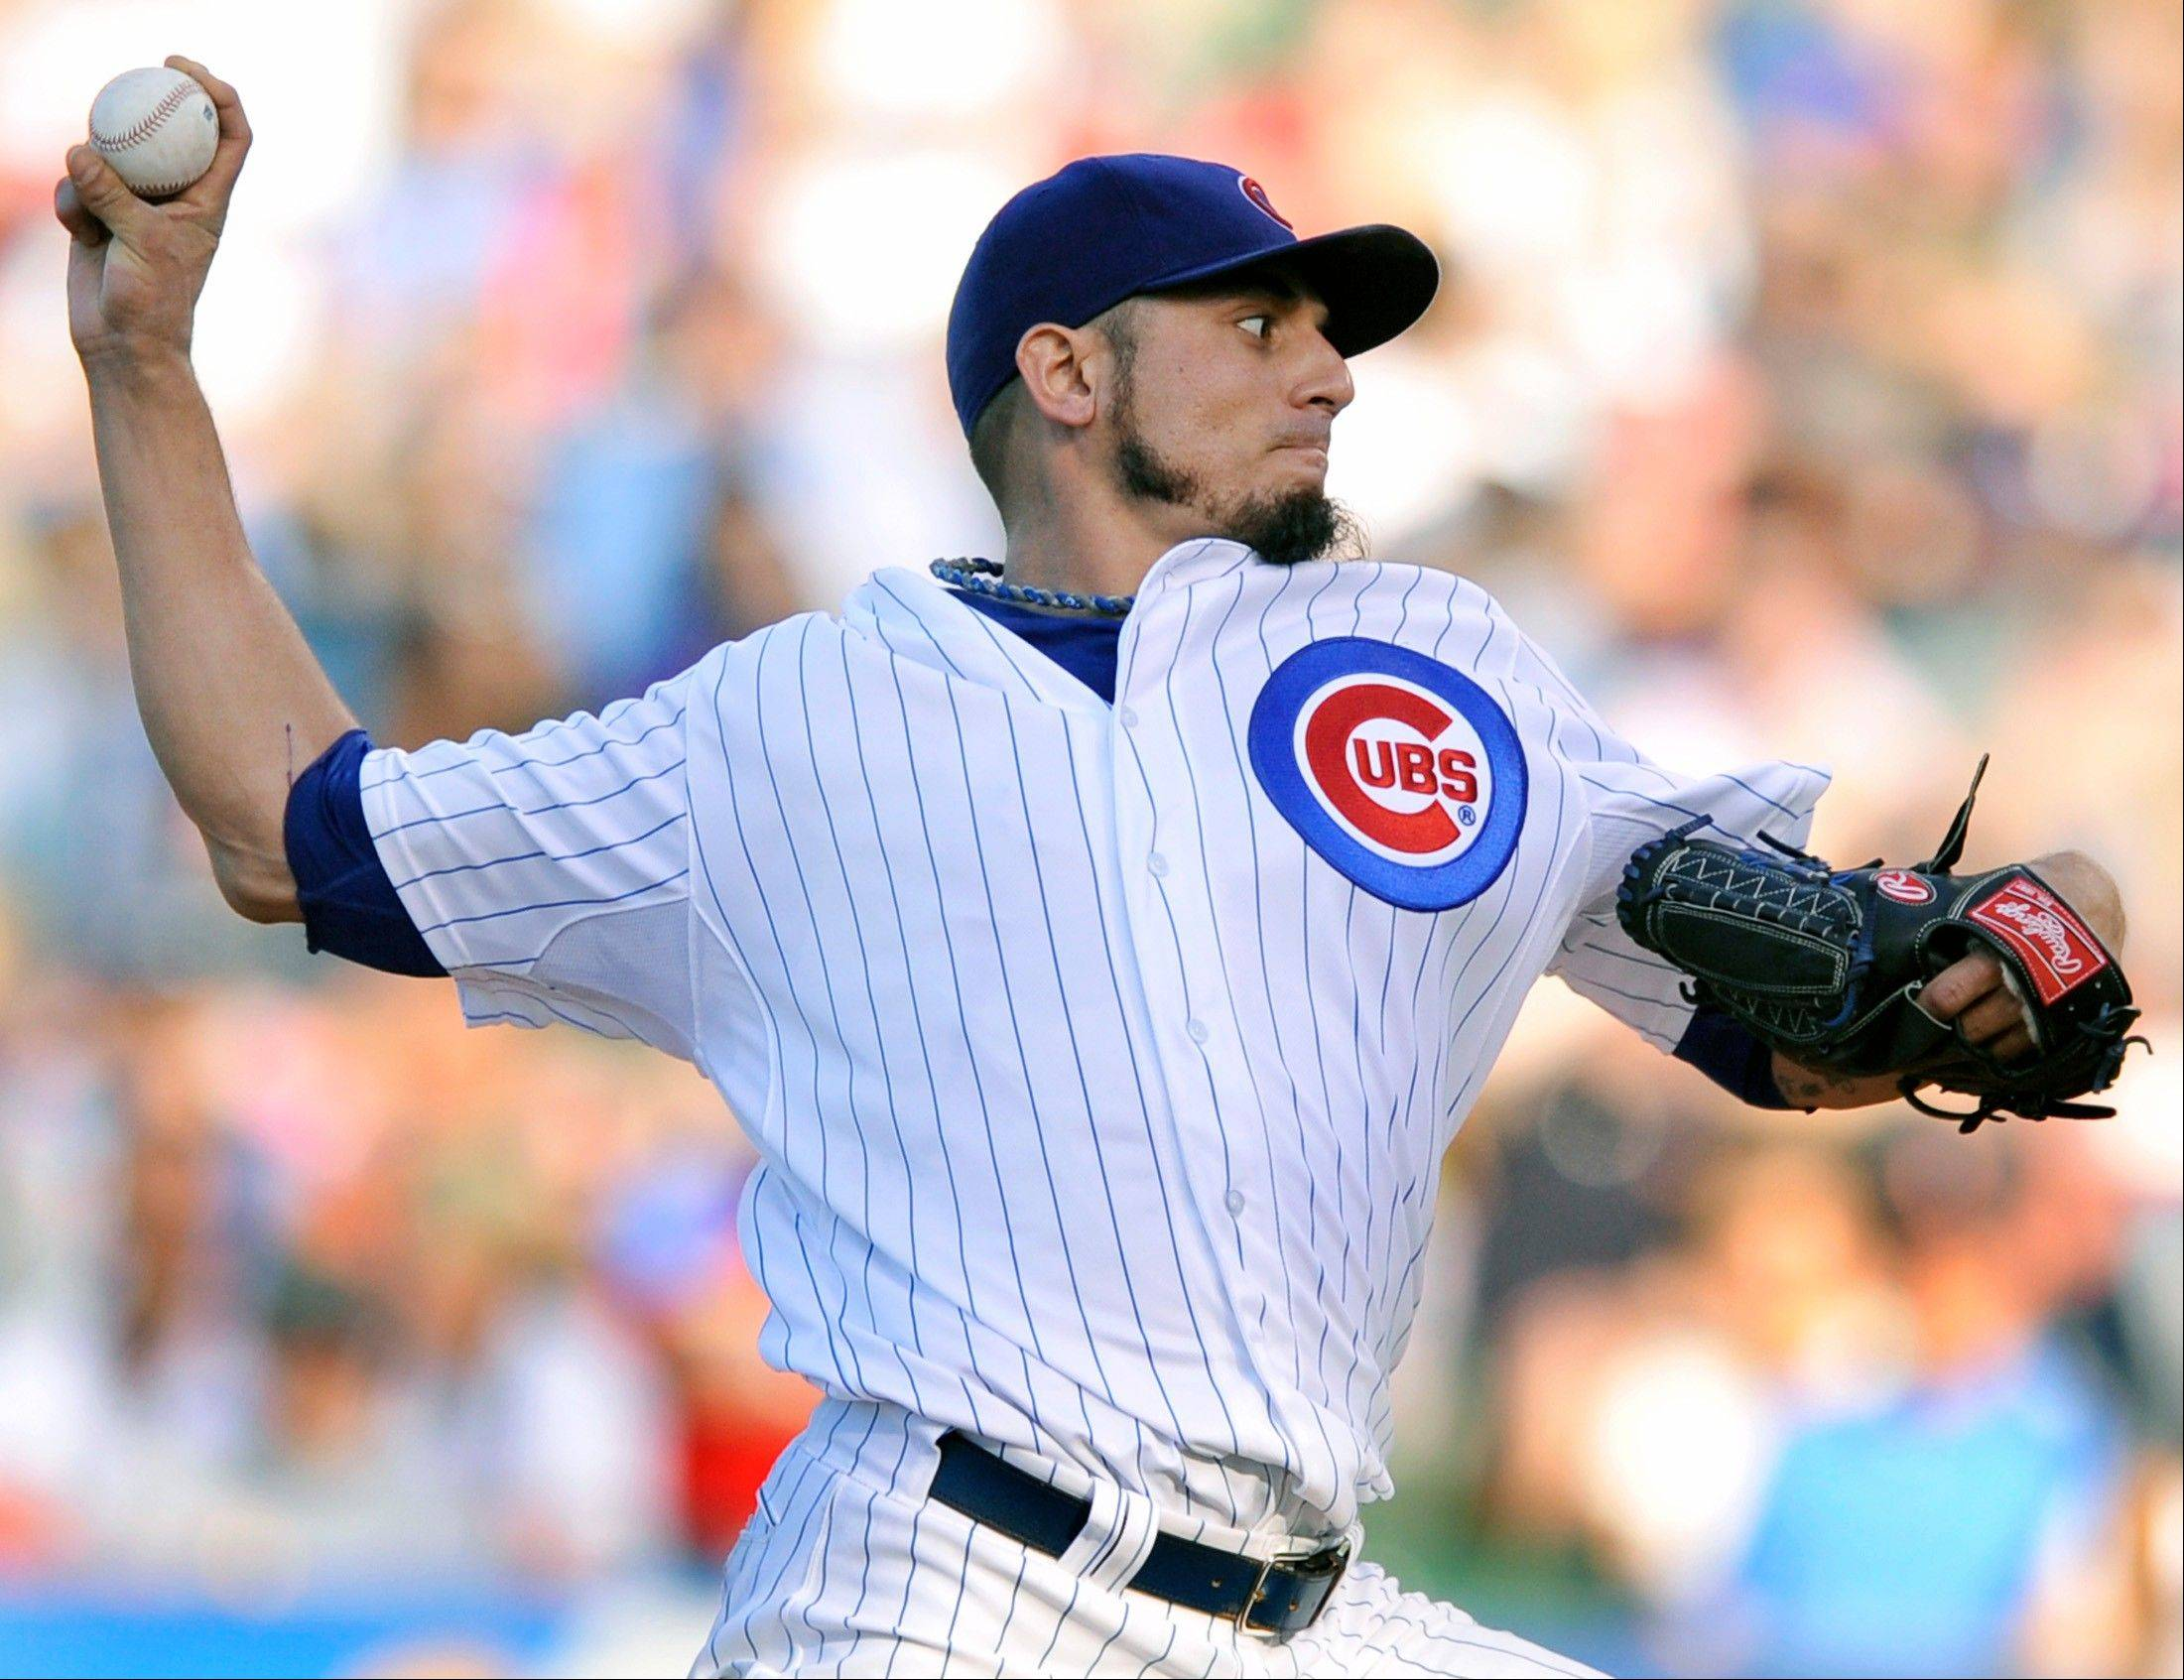 Cubs starter Matt Garza delivers a pitch during the first inning Saturday against the Cardinals at Wrigley Field.